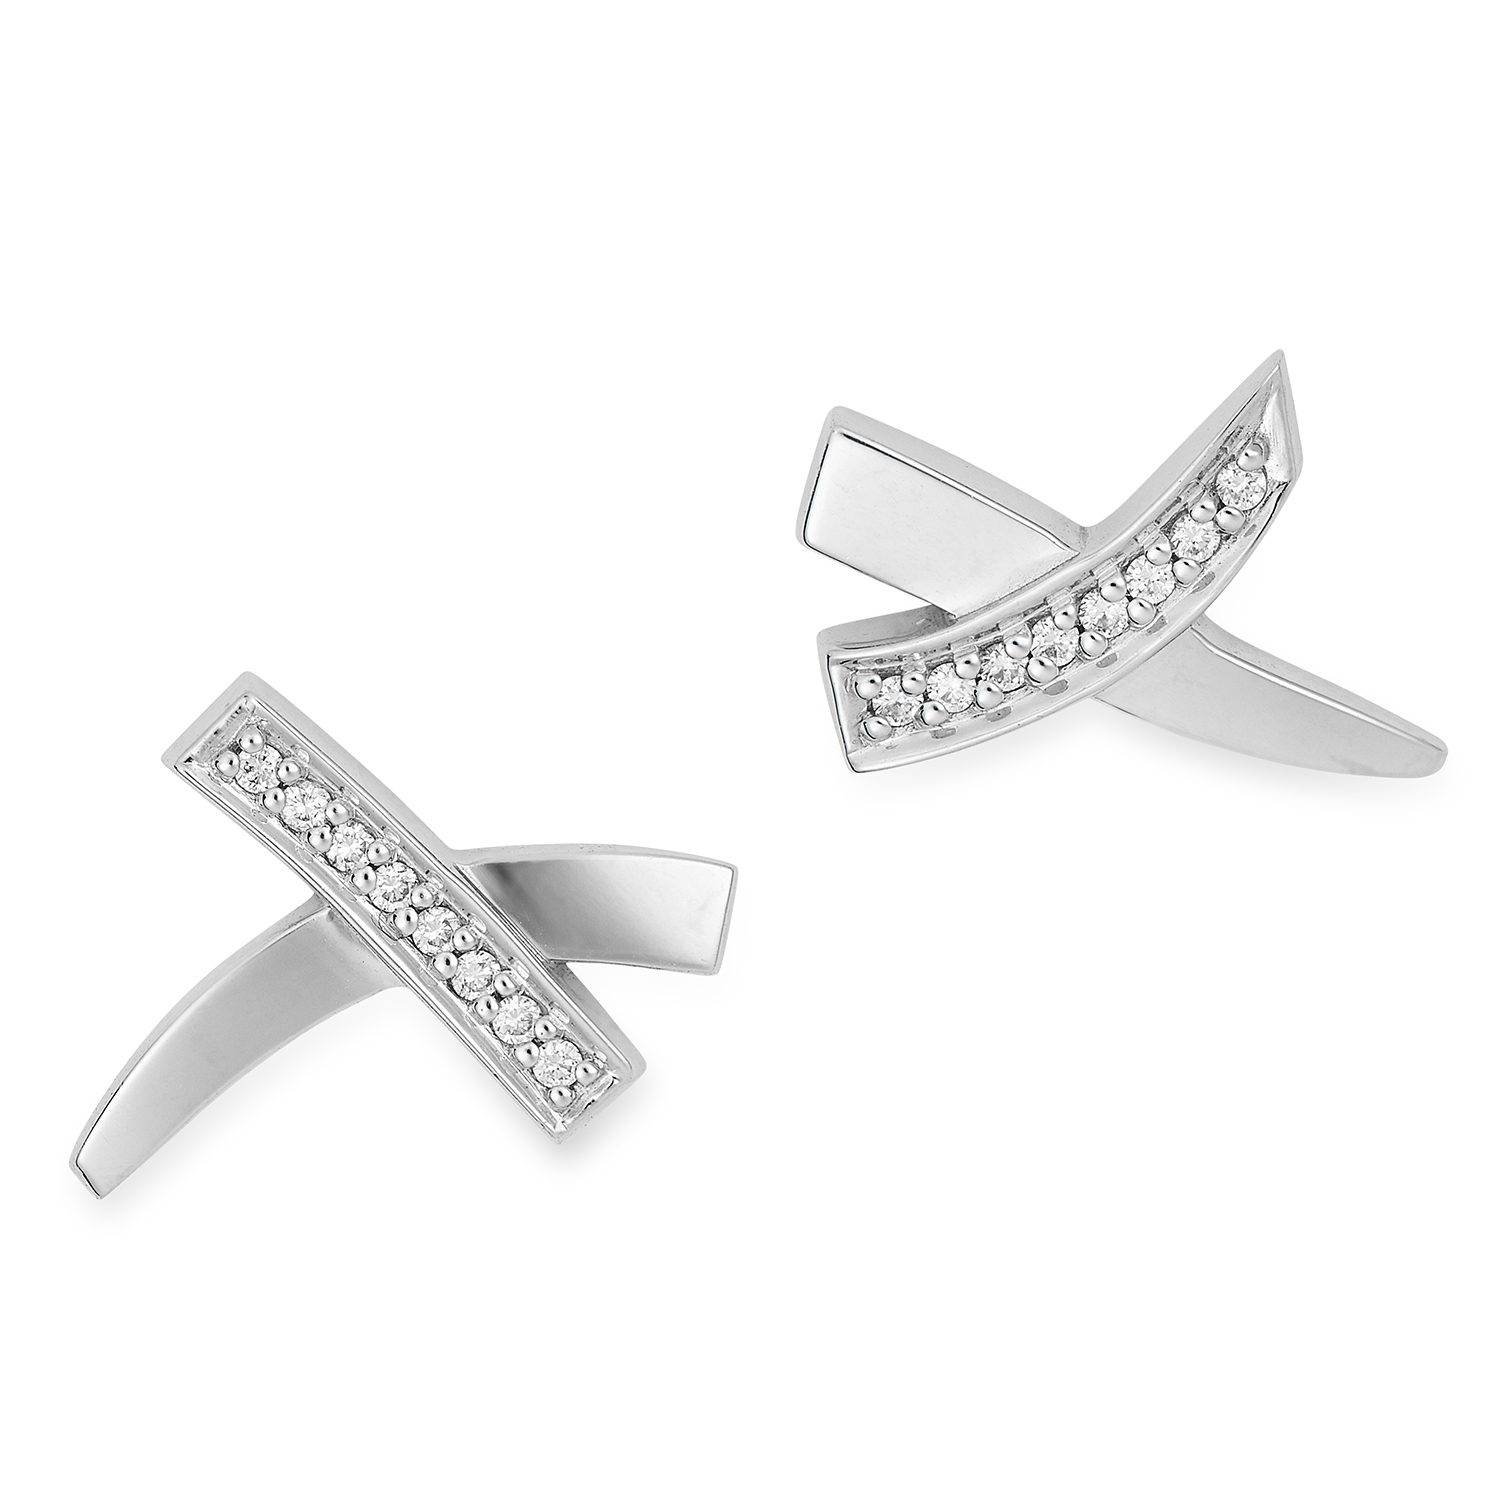 0.16 CARAT DIAMOND KISS EARRINGS, PALOMA PICASSO FOR TIFFANY AND CO in 18ct white gold, set with